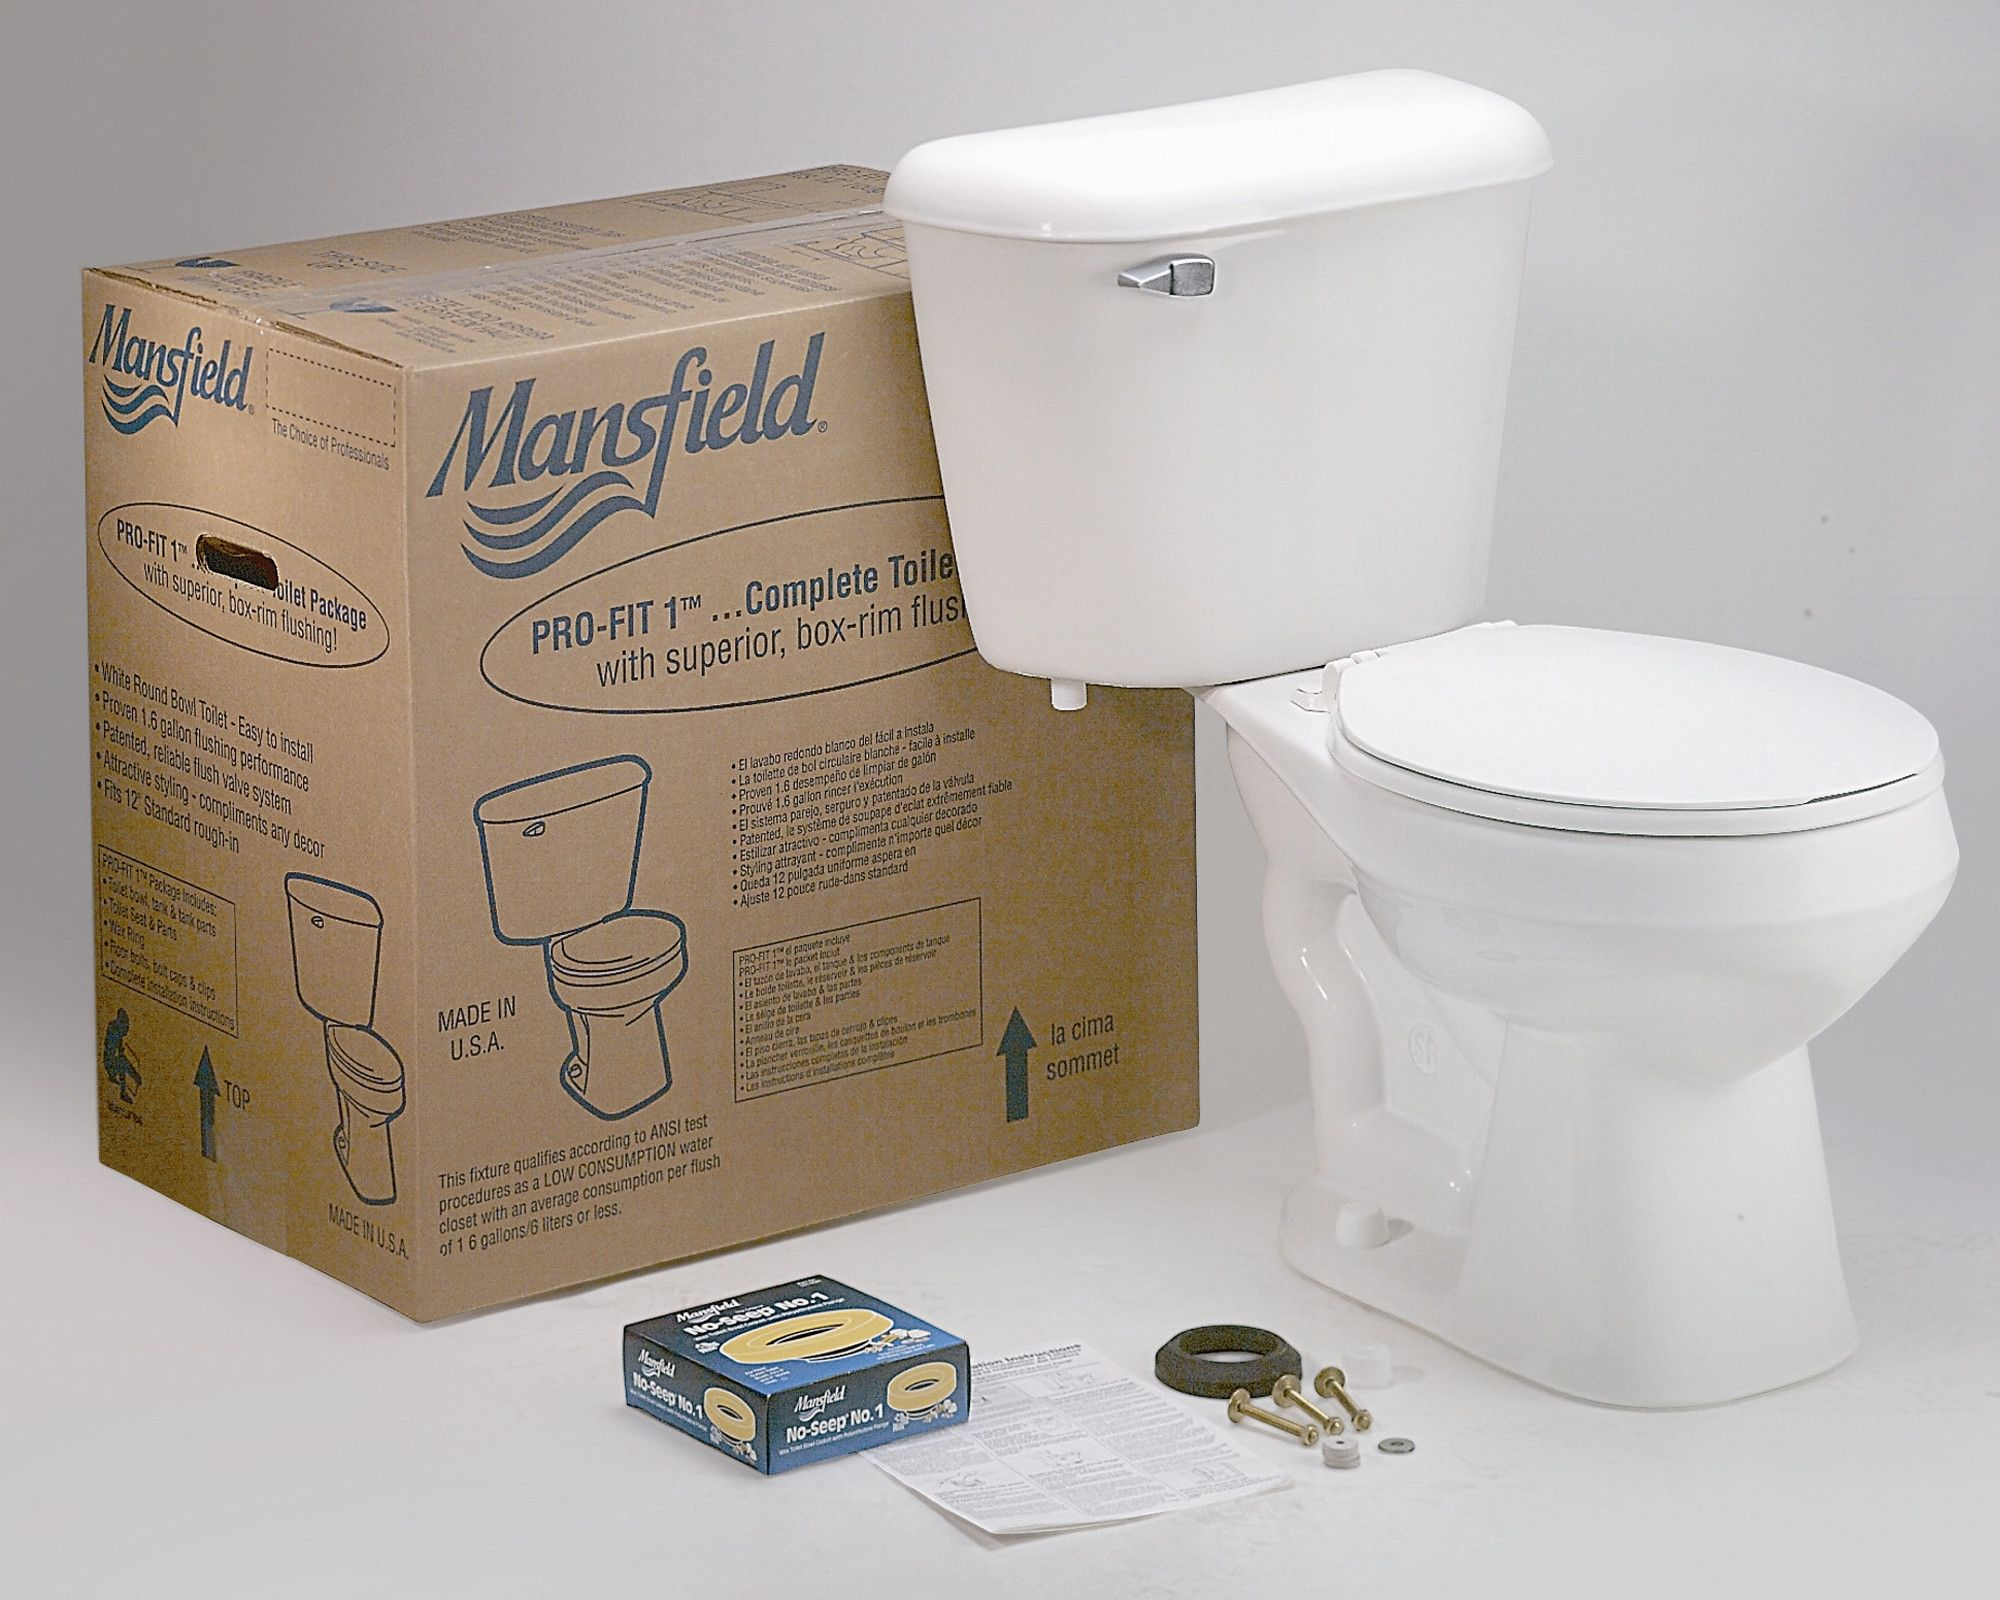 Pro Fit 1 Front Complete 1 6 Gpf Round Two Piece Toilet Seat Included Toilet Traditional Toilets Dual Flush Toilet